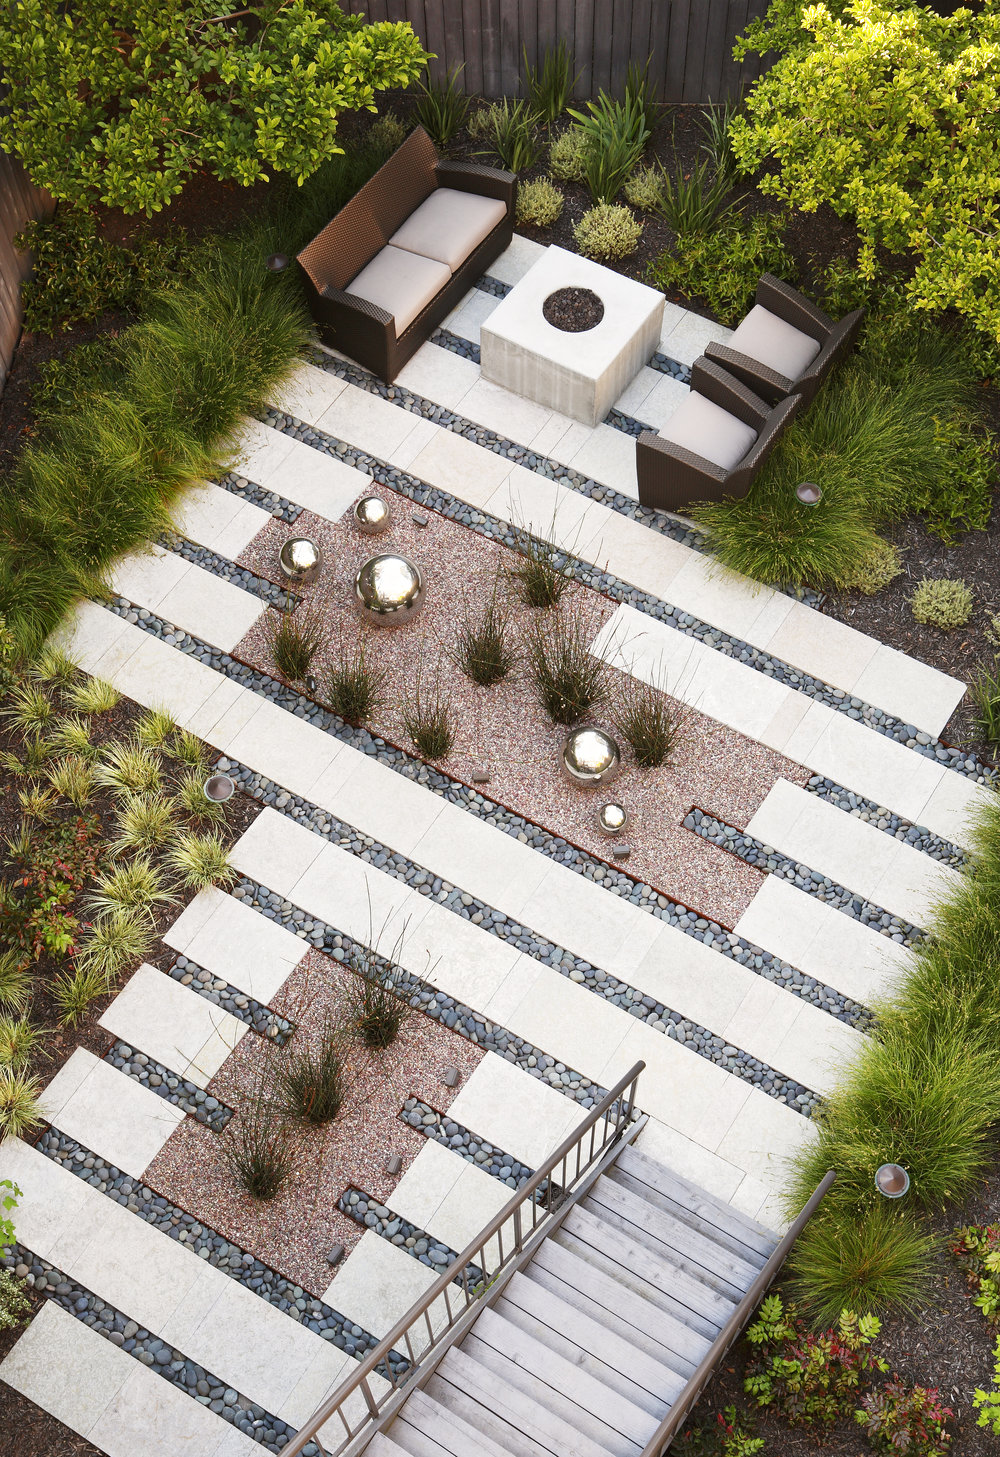 "<a href=""http://www.contemporist.com/16-backyard-landscape-designs-as-seen-from-above/"">16 Inspirational Landscape Designs</a>"